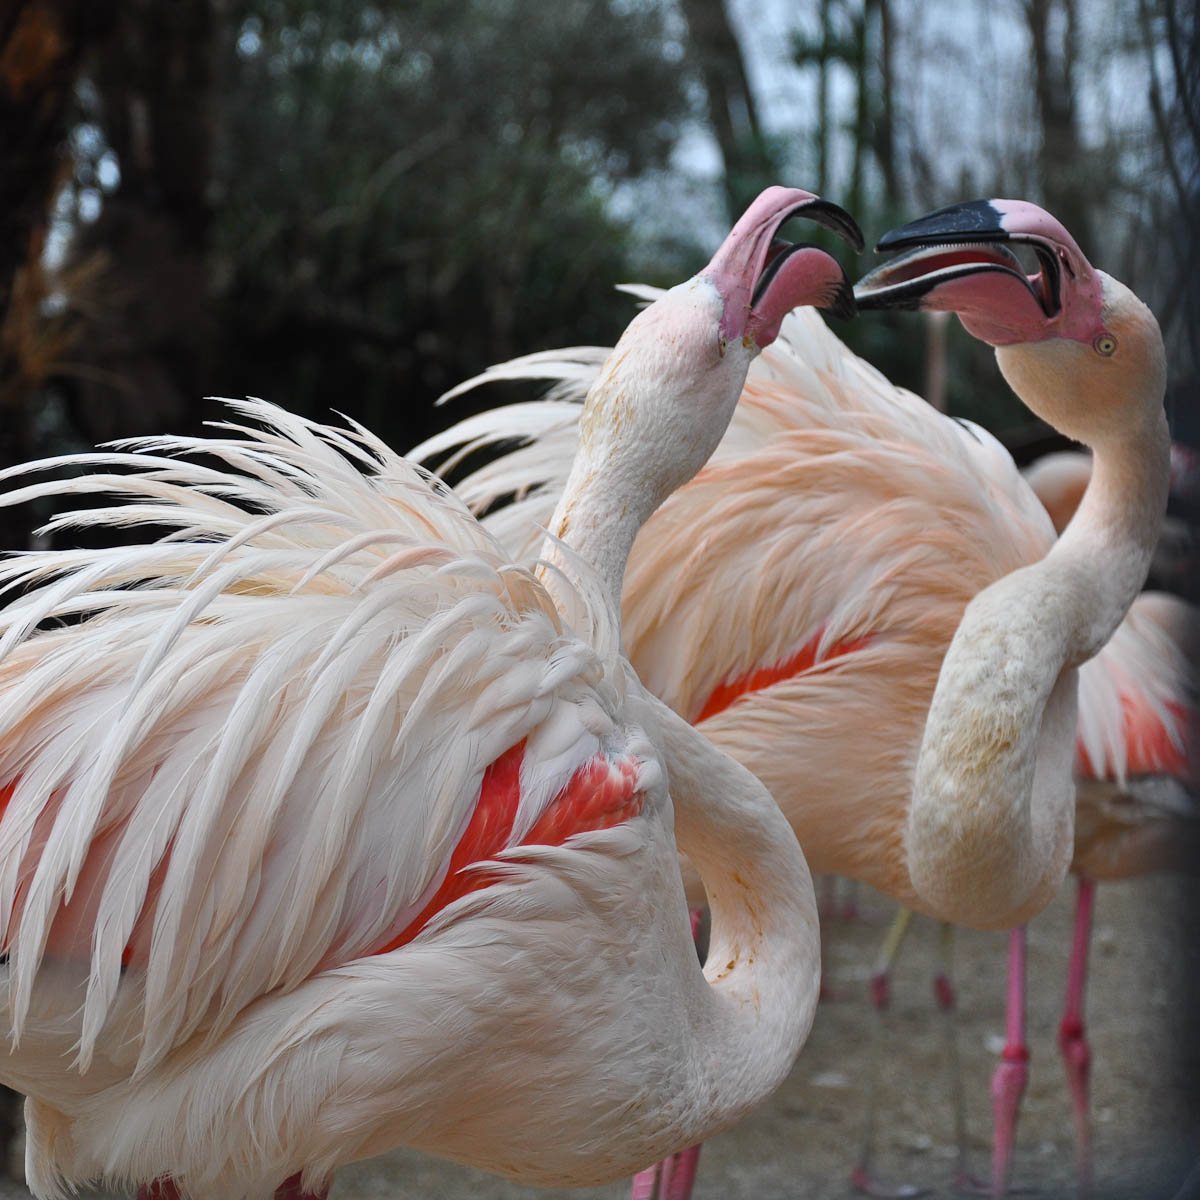 Kissing flamingoes, Parco Faunistico Cappeller, Nove, Veneto, Italy